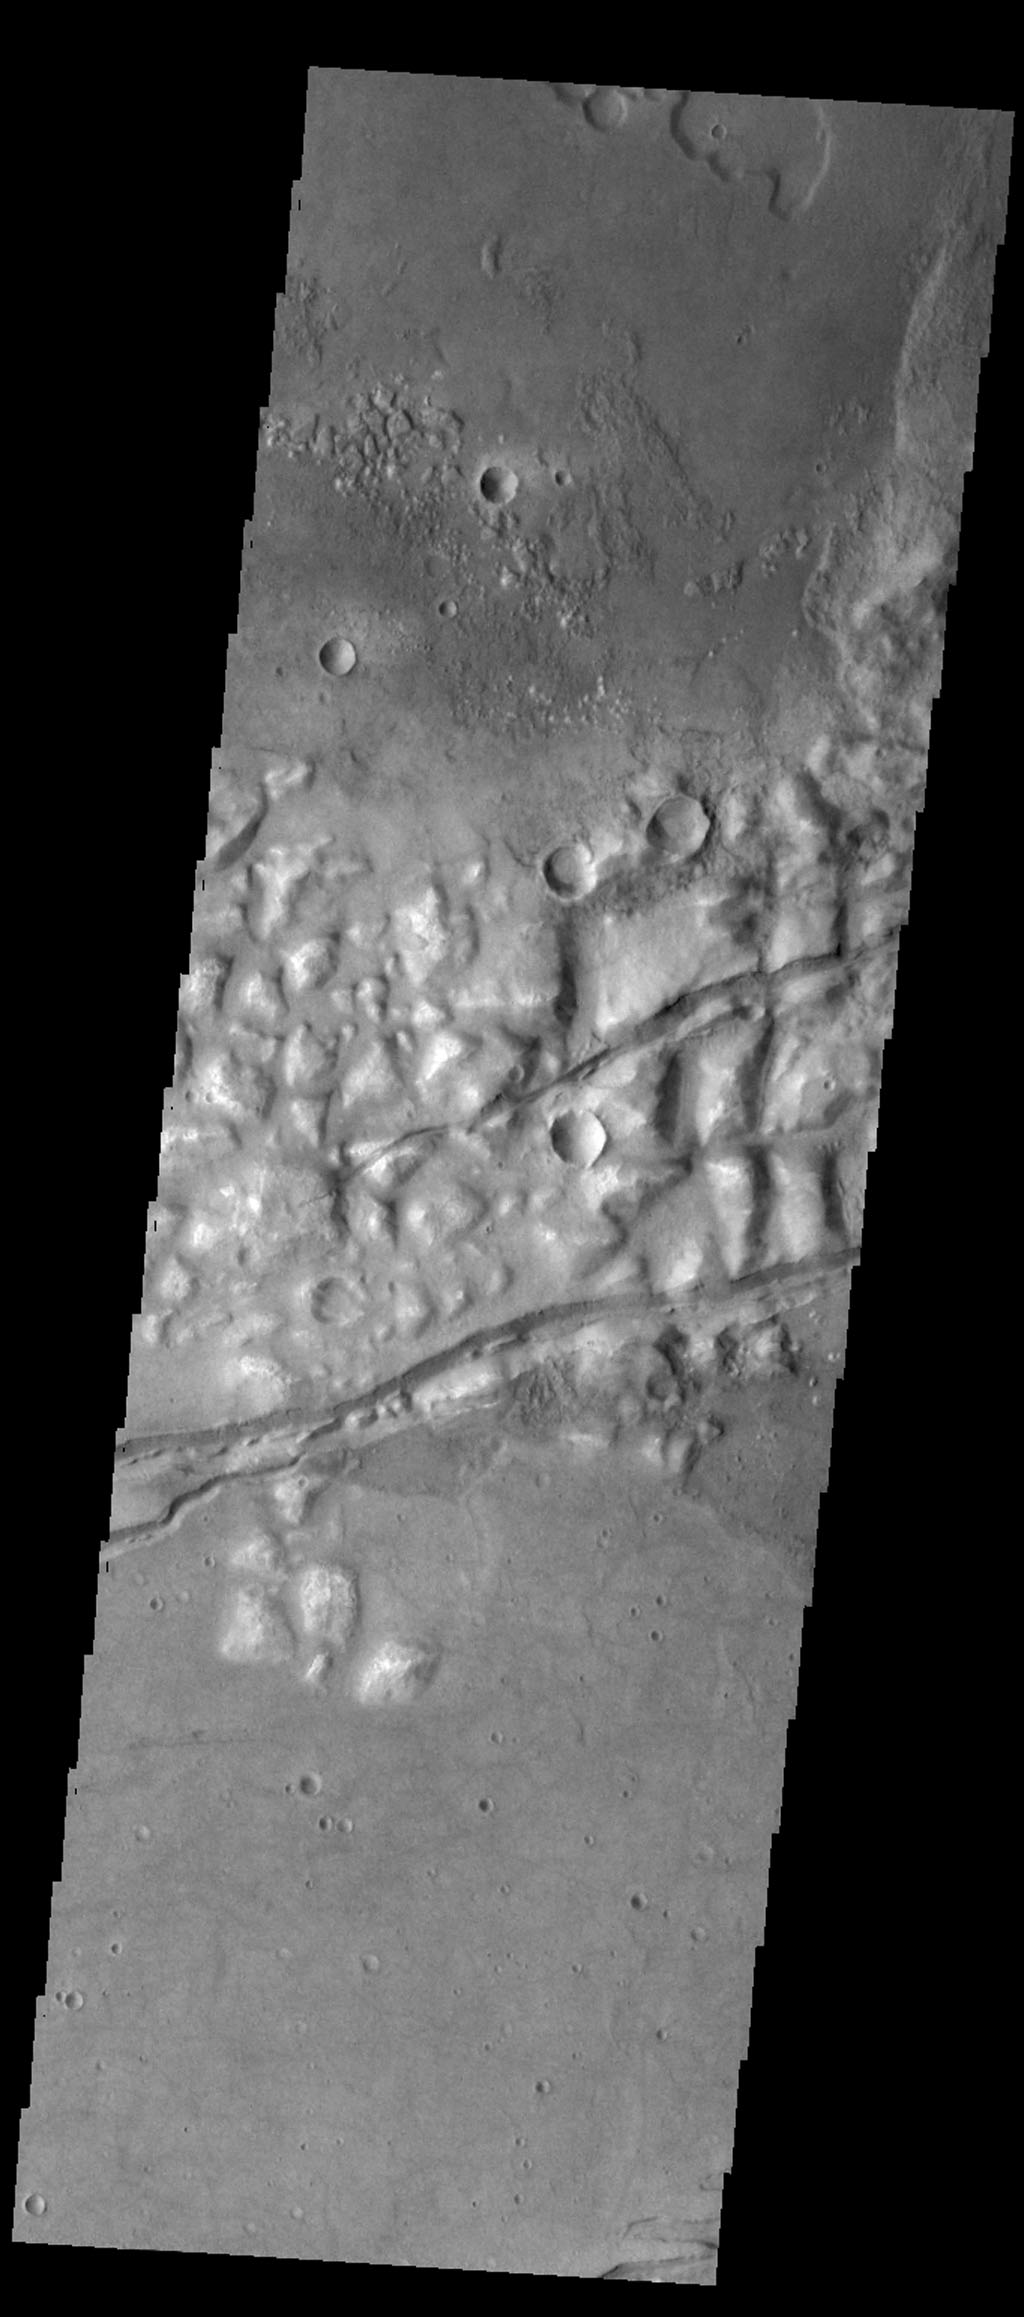 Several fractures cross through Gorgonum Chaos in this image captured by NASA's 2001 Mars Odyssey spacecraft.